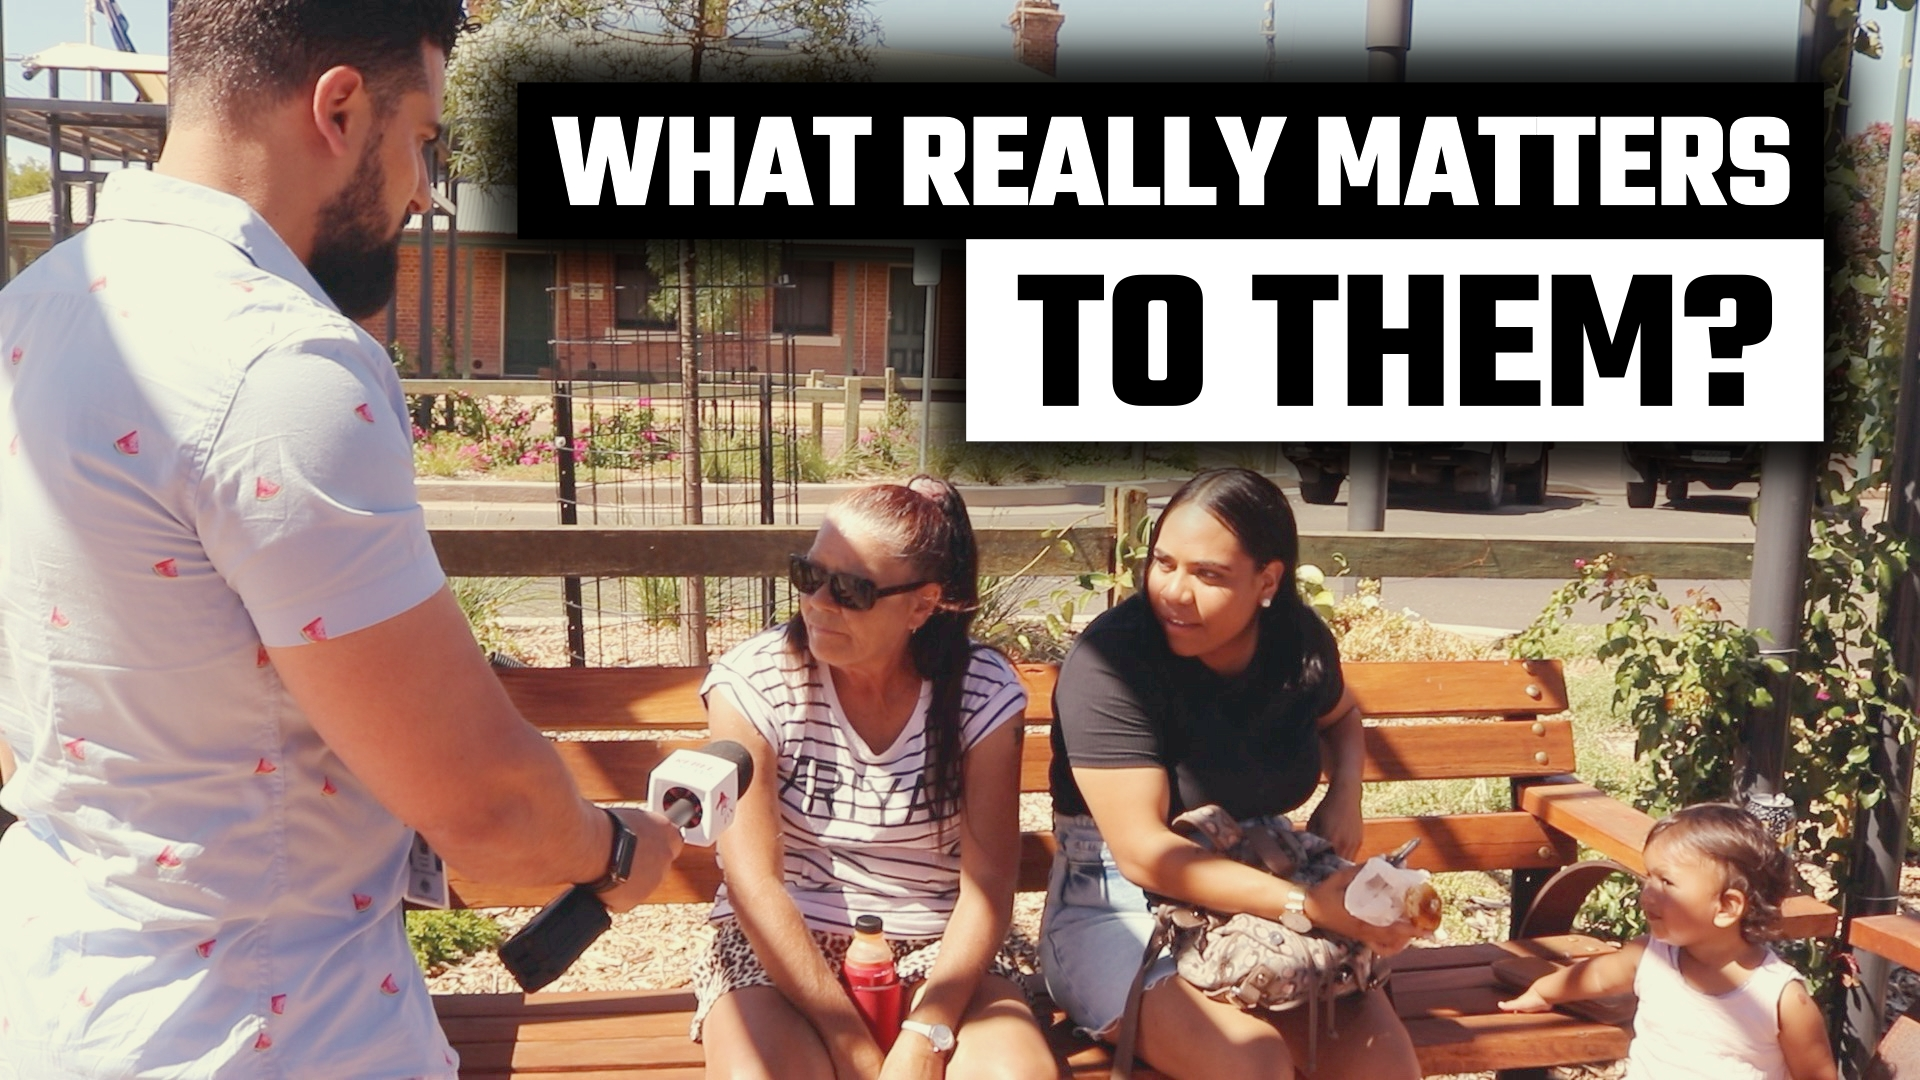 This is the Aboriginal perspective they DO NOT want you to see